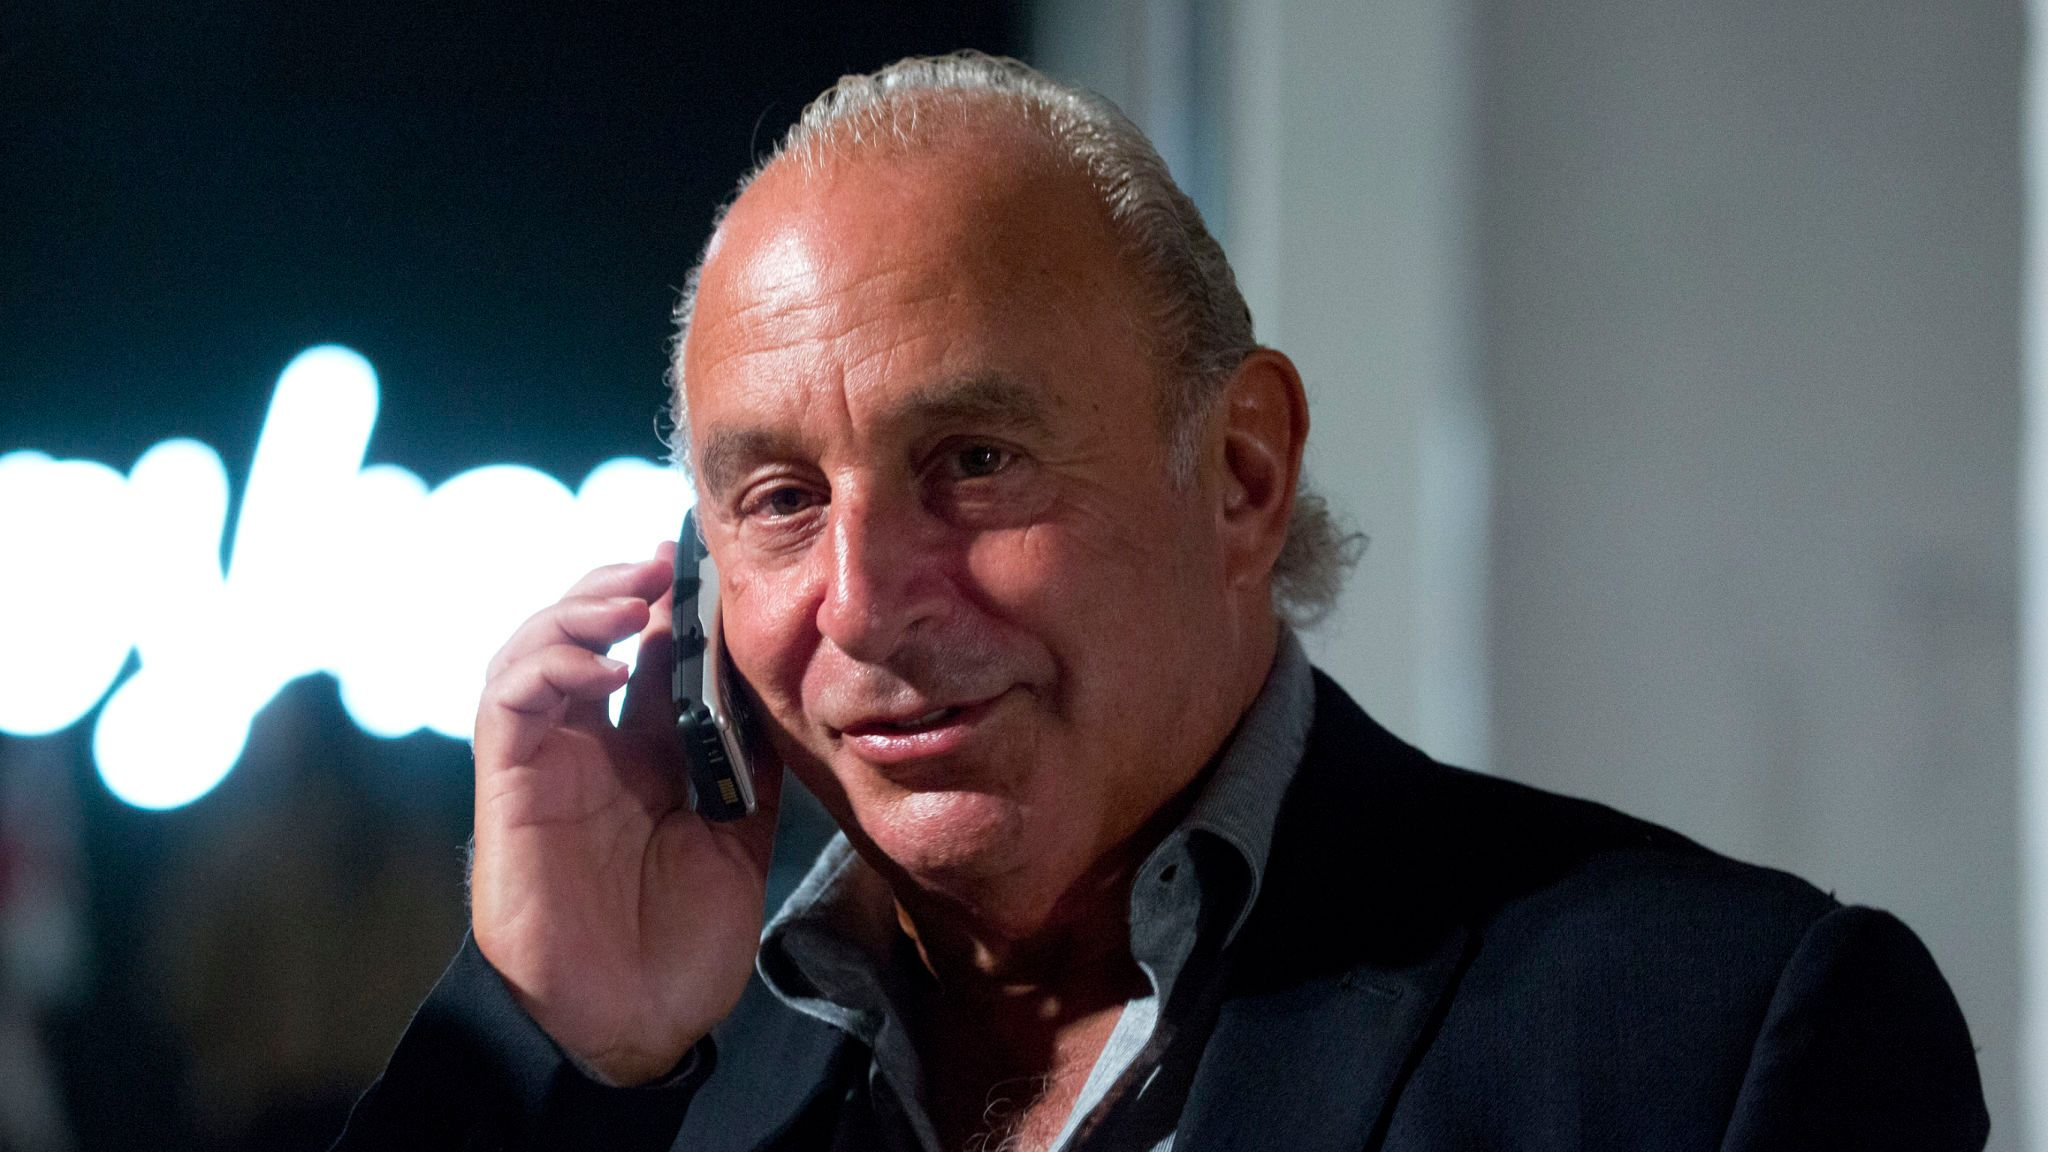 Sir Philip Green is no longer believed to be a billionaire